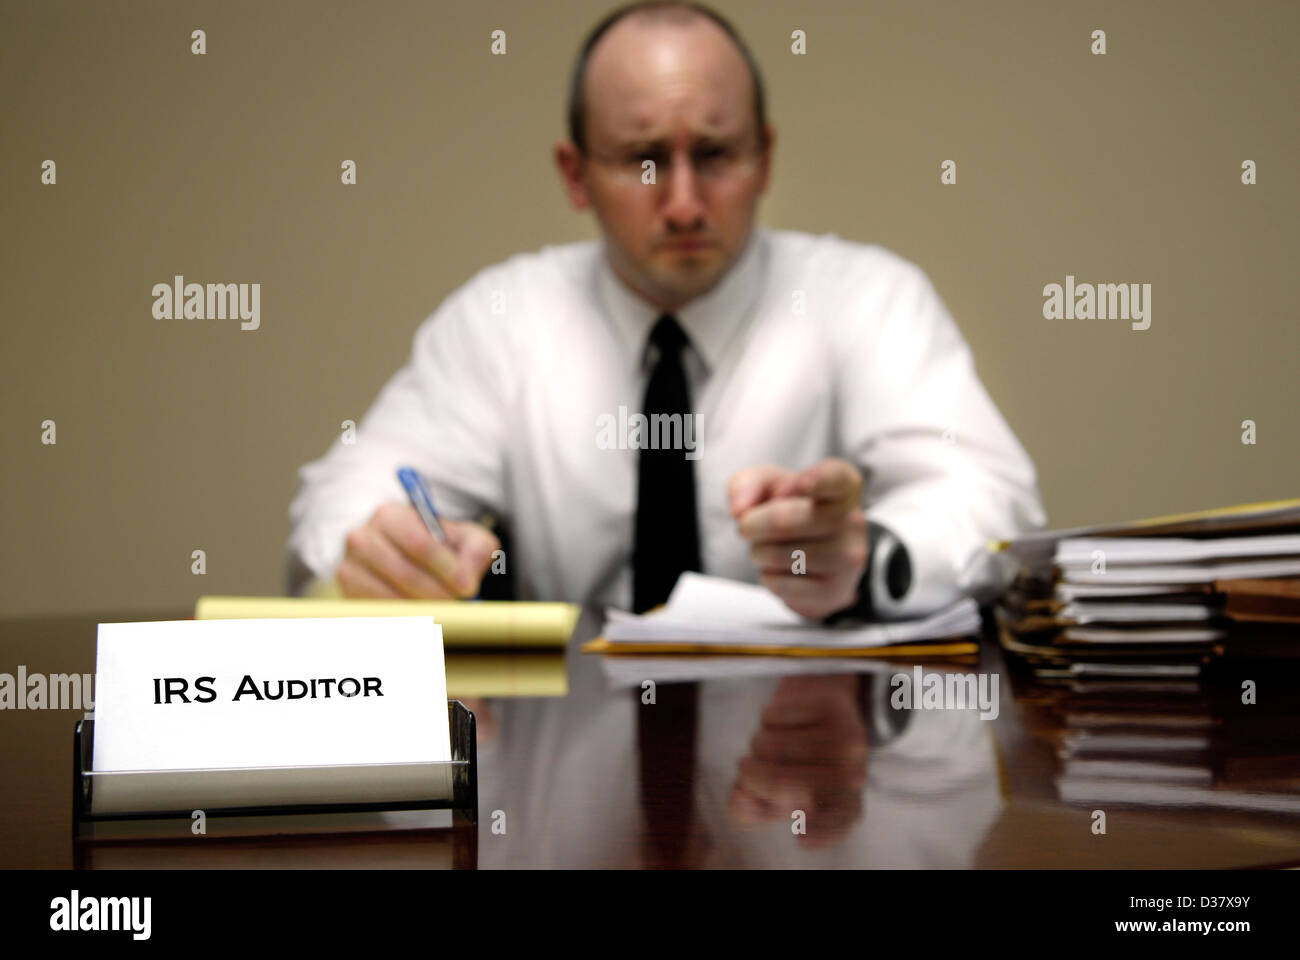 IRS tax auditor man with a stern or mean expression - Stock Image